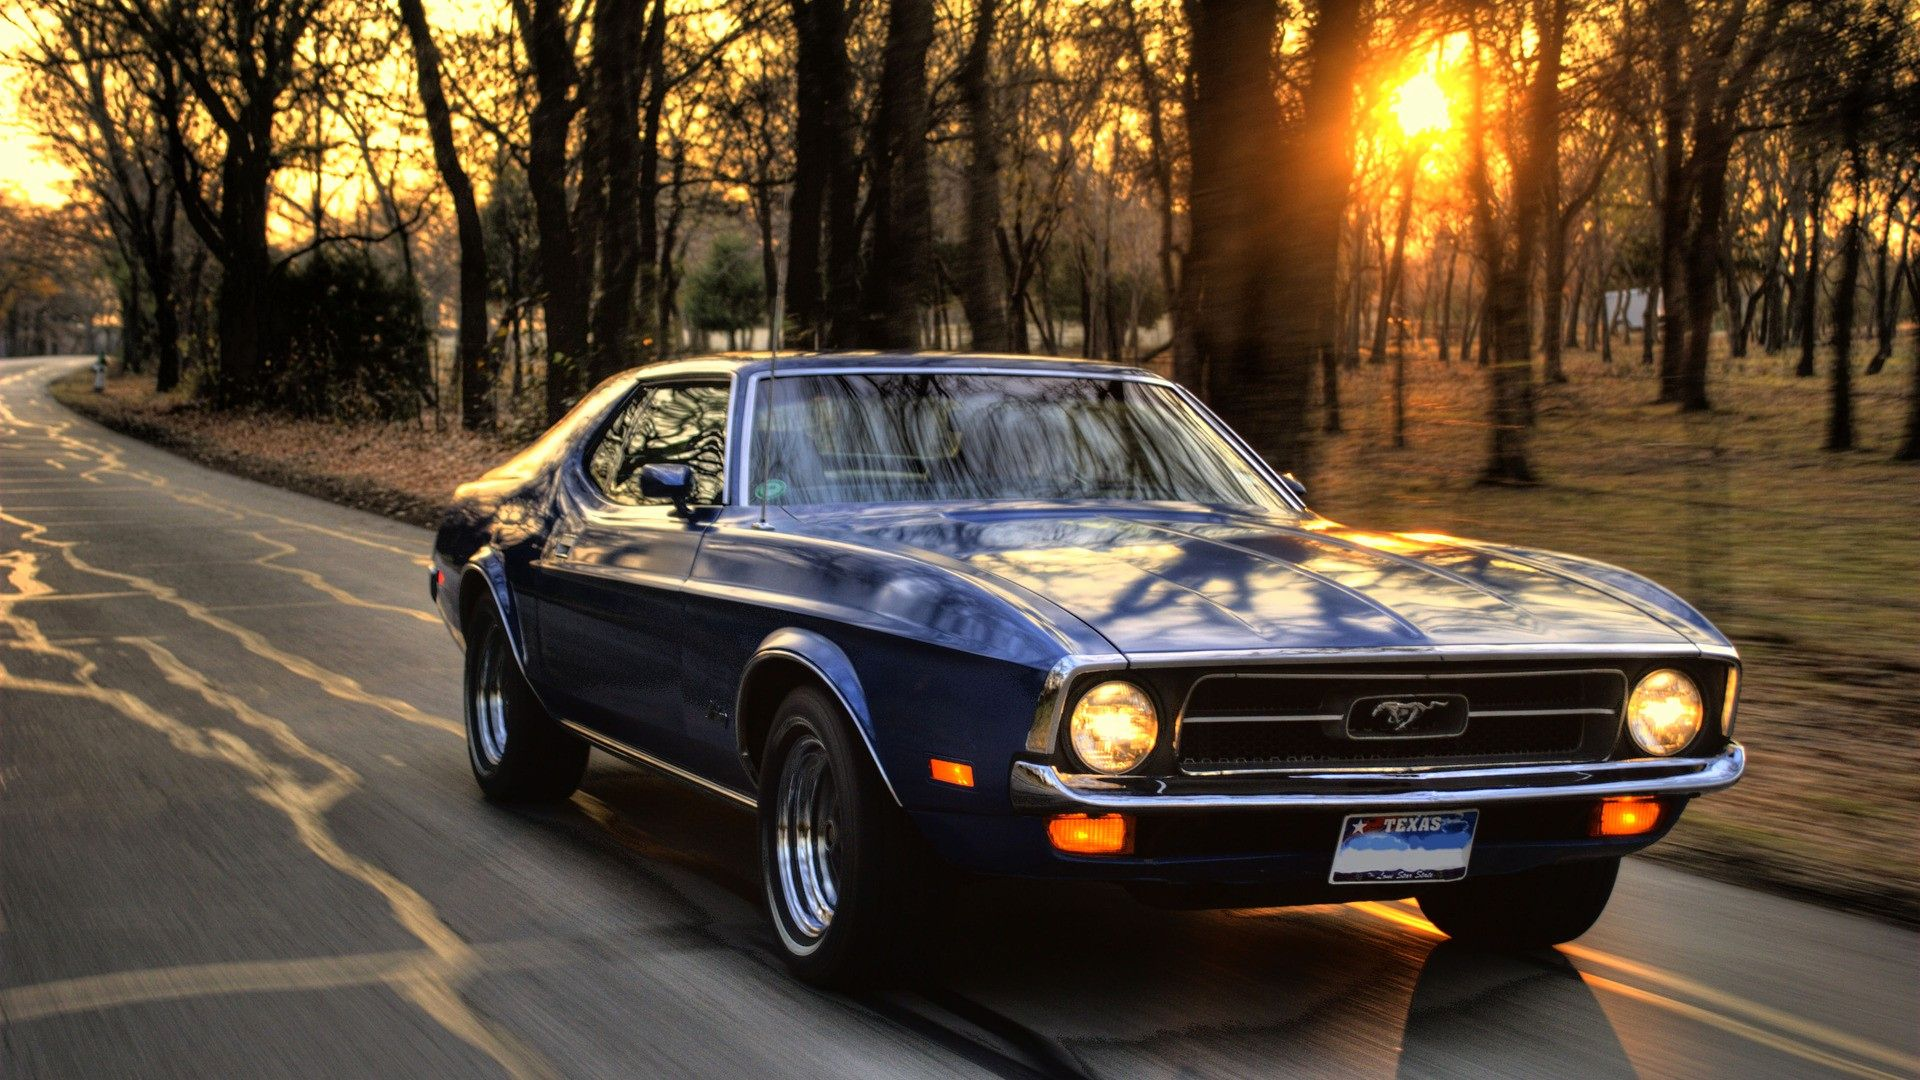 American Muscle Cars Wallpapers Top Free American Muscle Cars